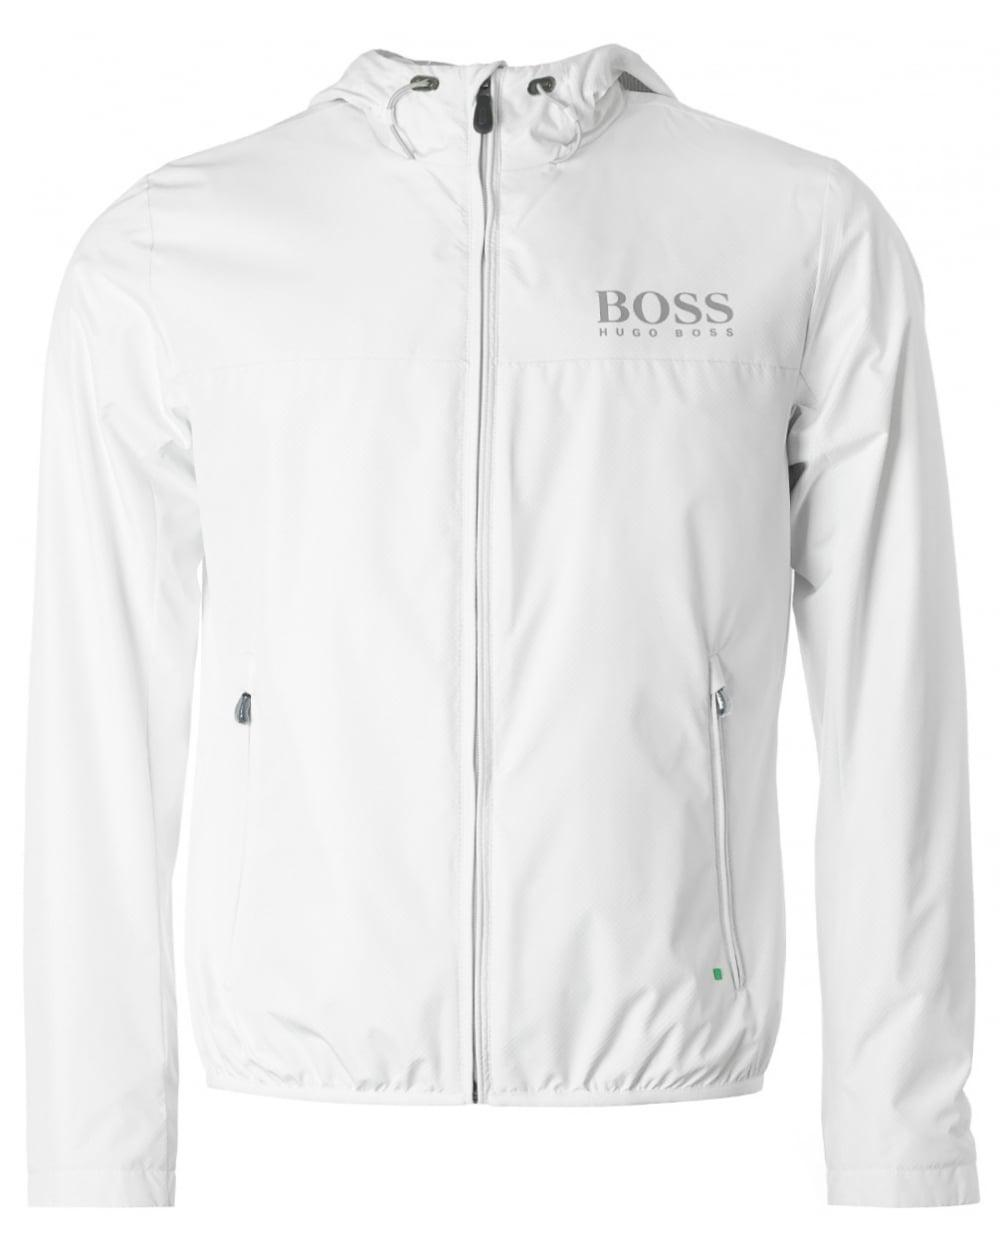 90ae26c29f30 BOSS Athleisure Jeltech Reflective Logo Hooded Jacket in White for ...